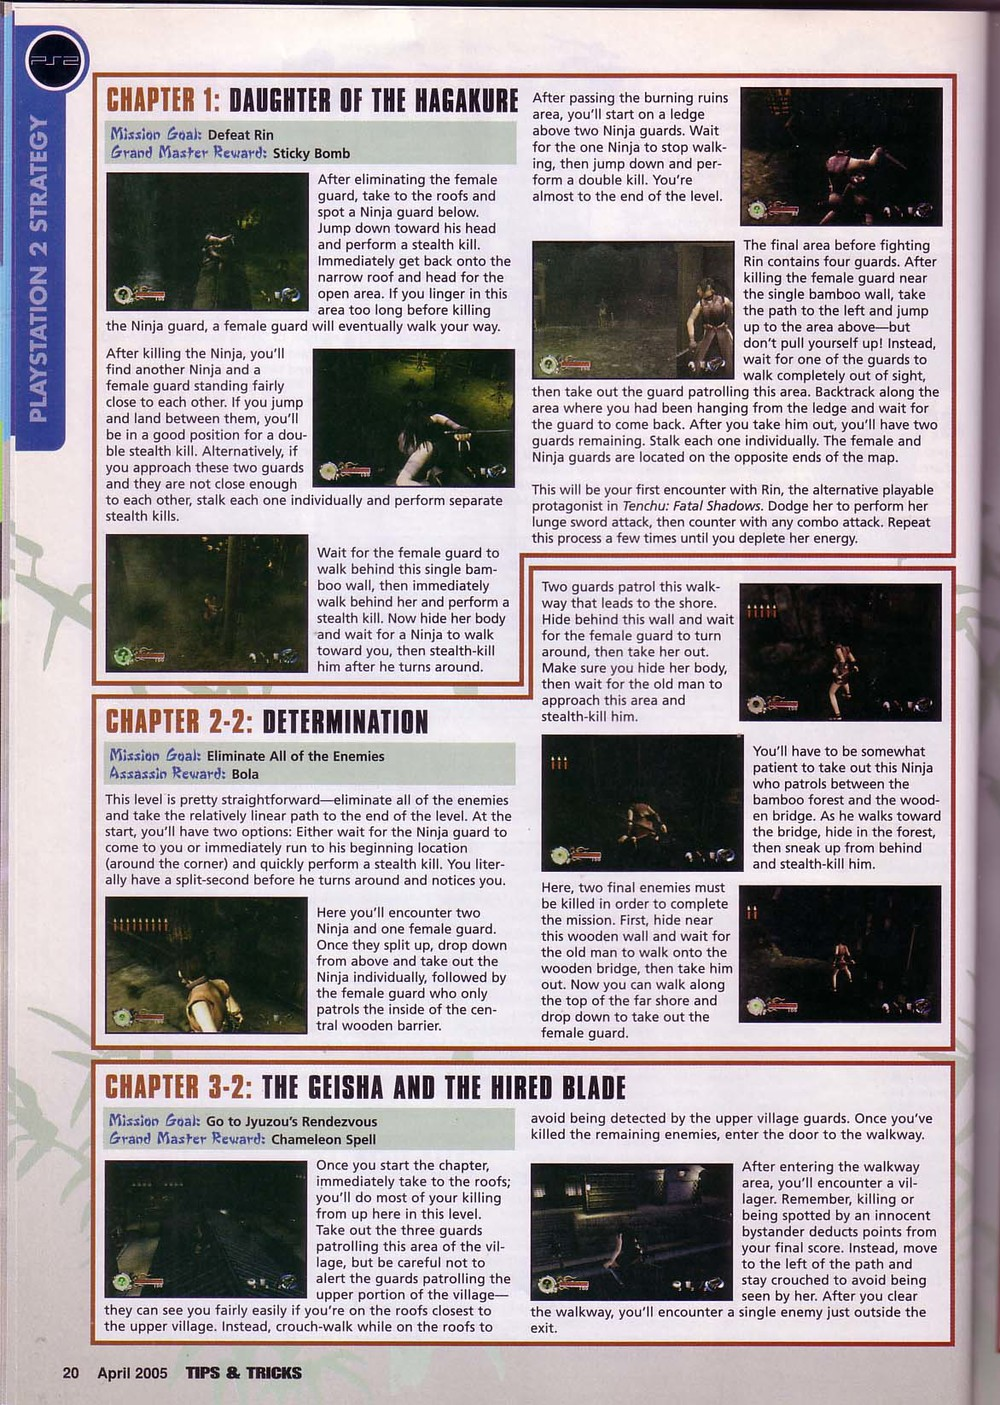 TipsandTricks_April_2005_Tenchu_pg3_Strategy.jpg